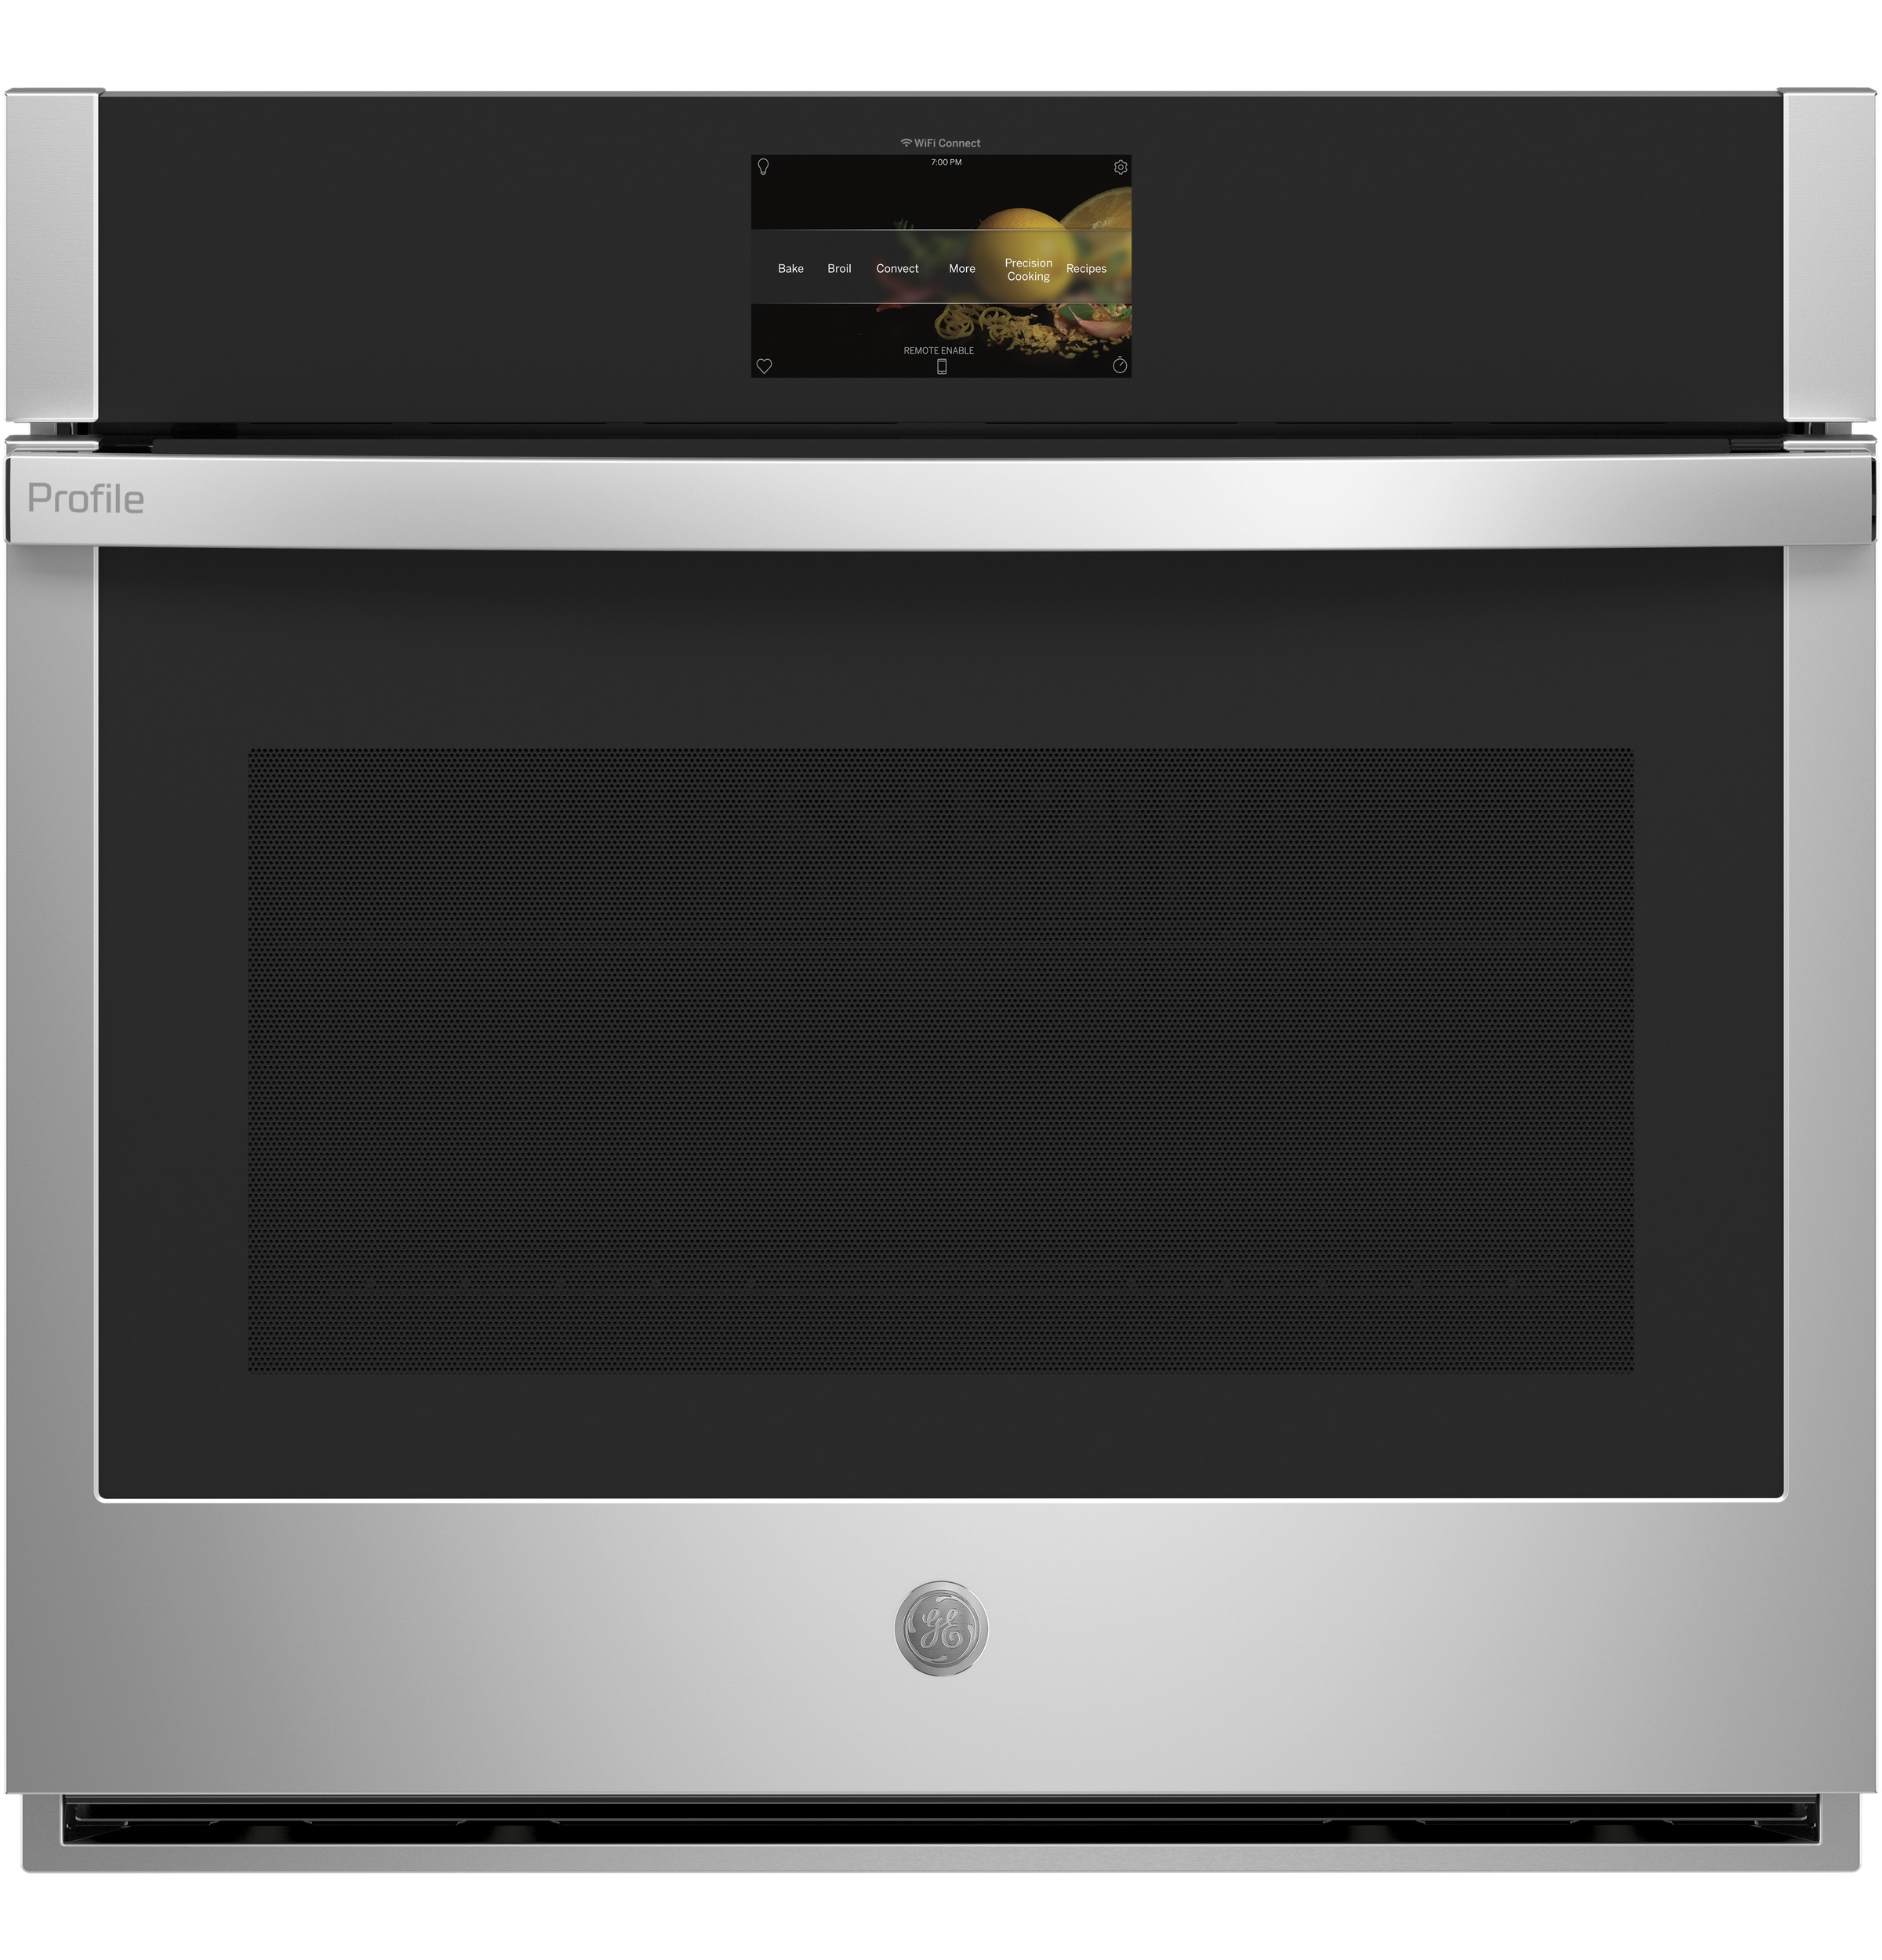 "GE Profile GE Profile™ Series 30"" Built-In Convection Single Wall Oven"